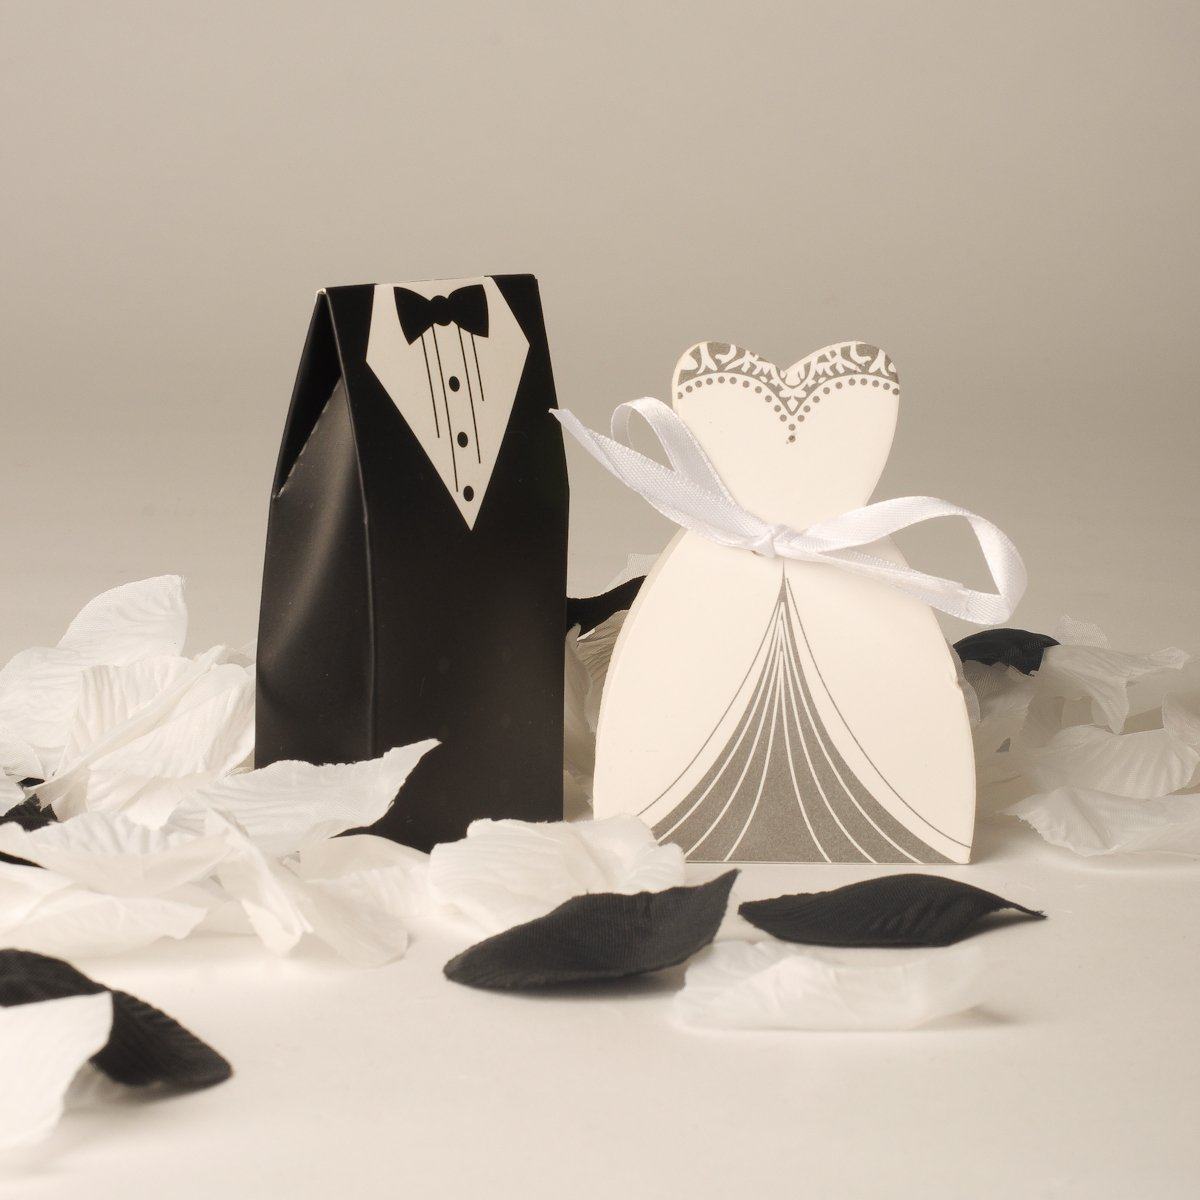 100 Bride And Groom Wedding Favour Boxes (50 Bride & 50 Groom) Style ...